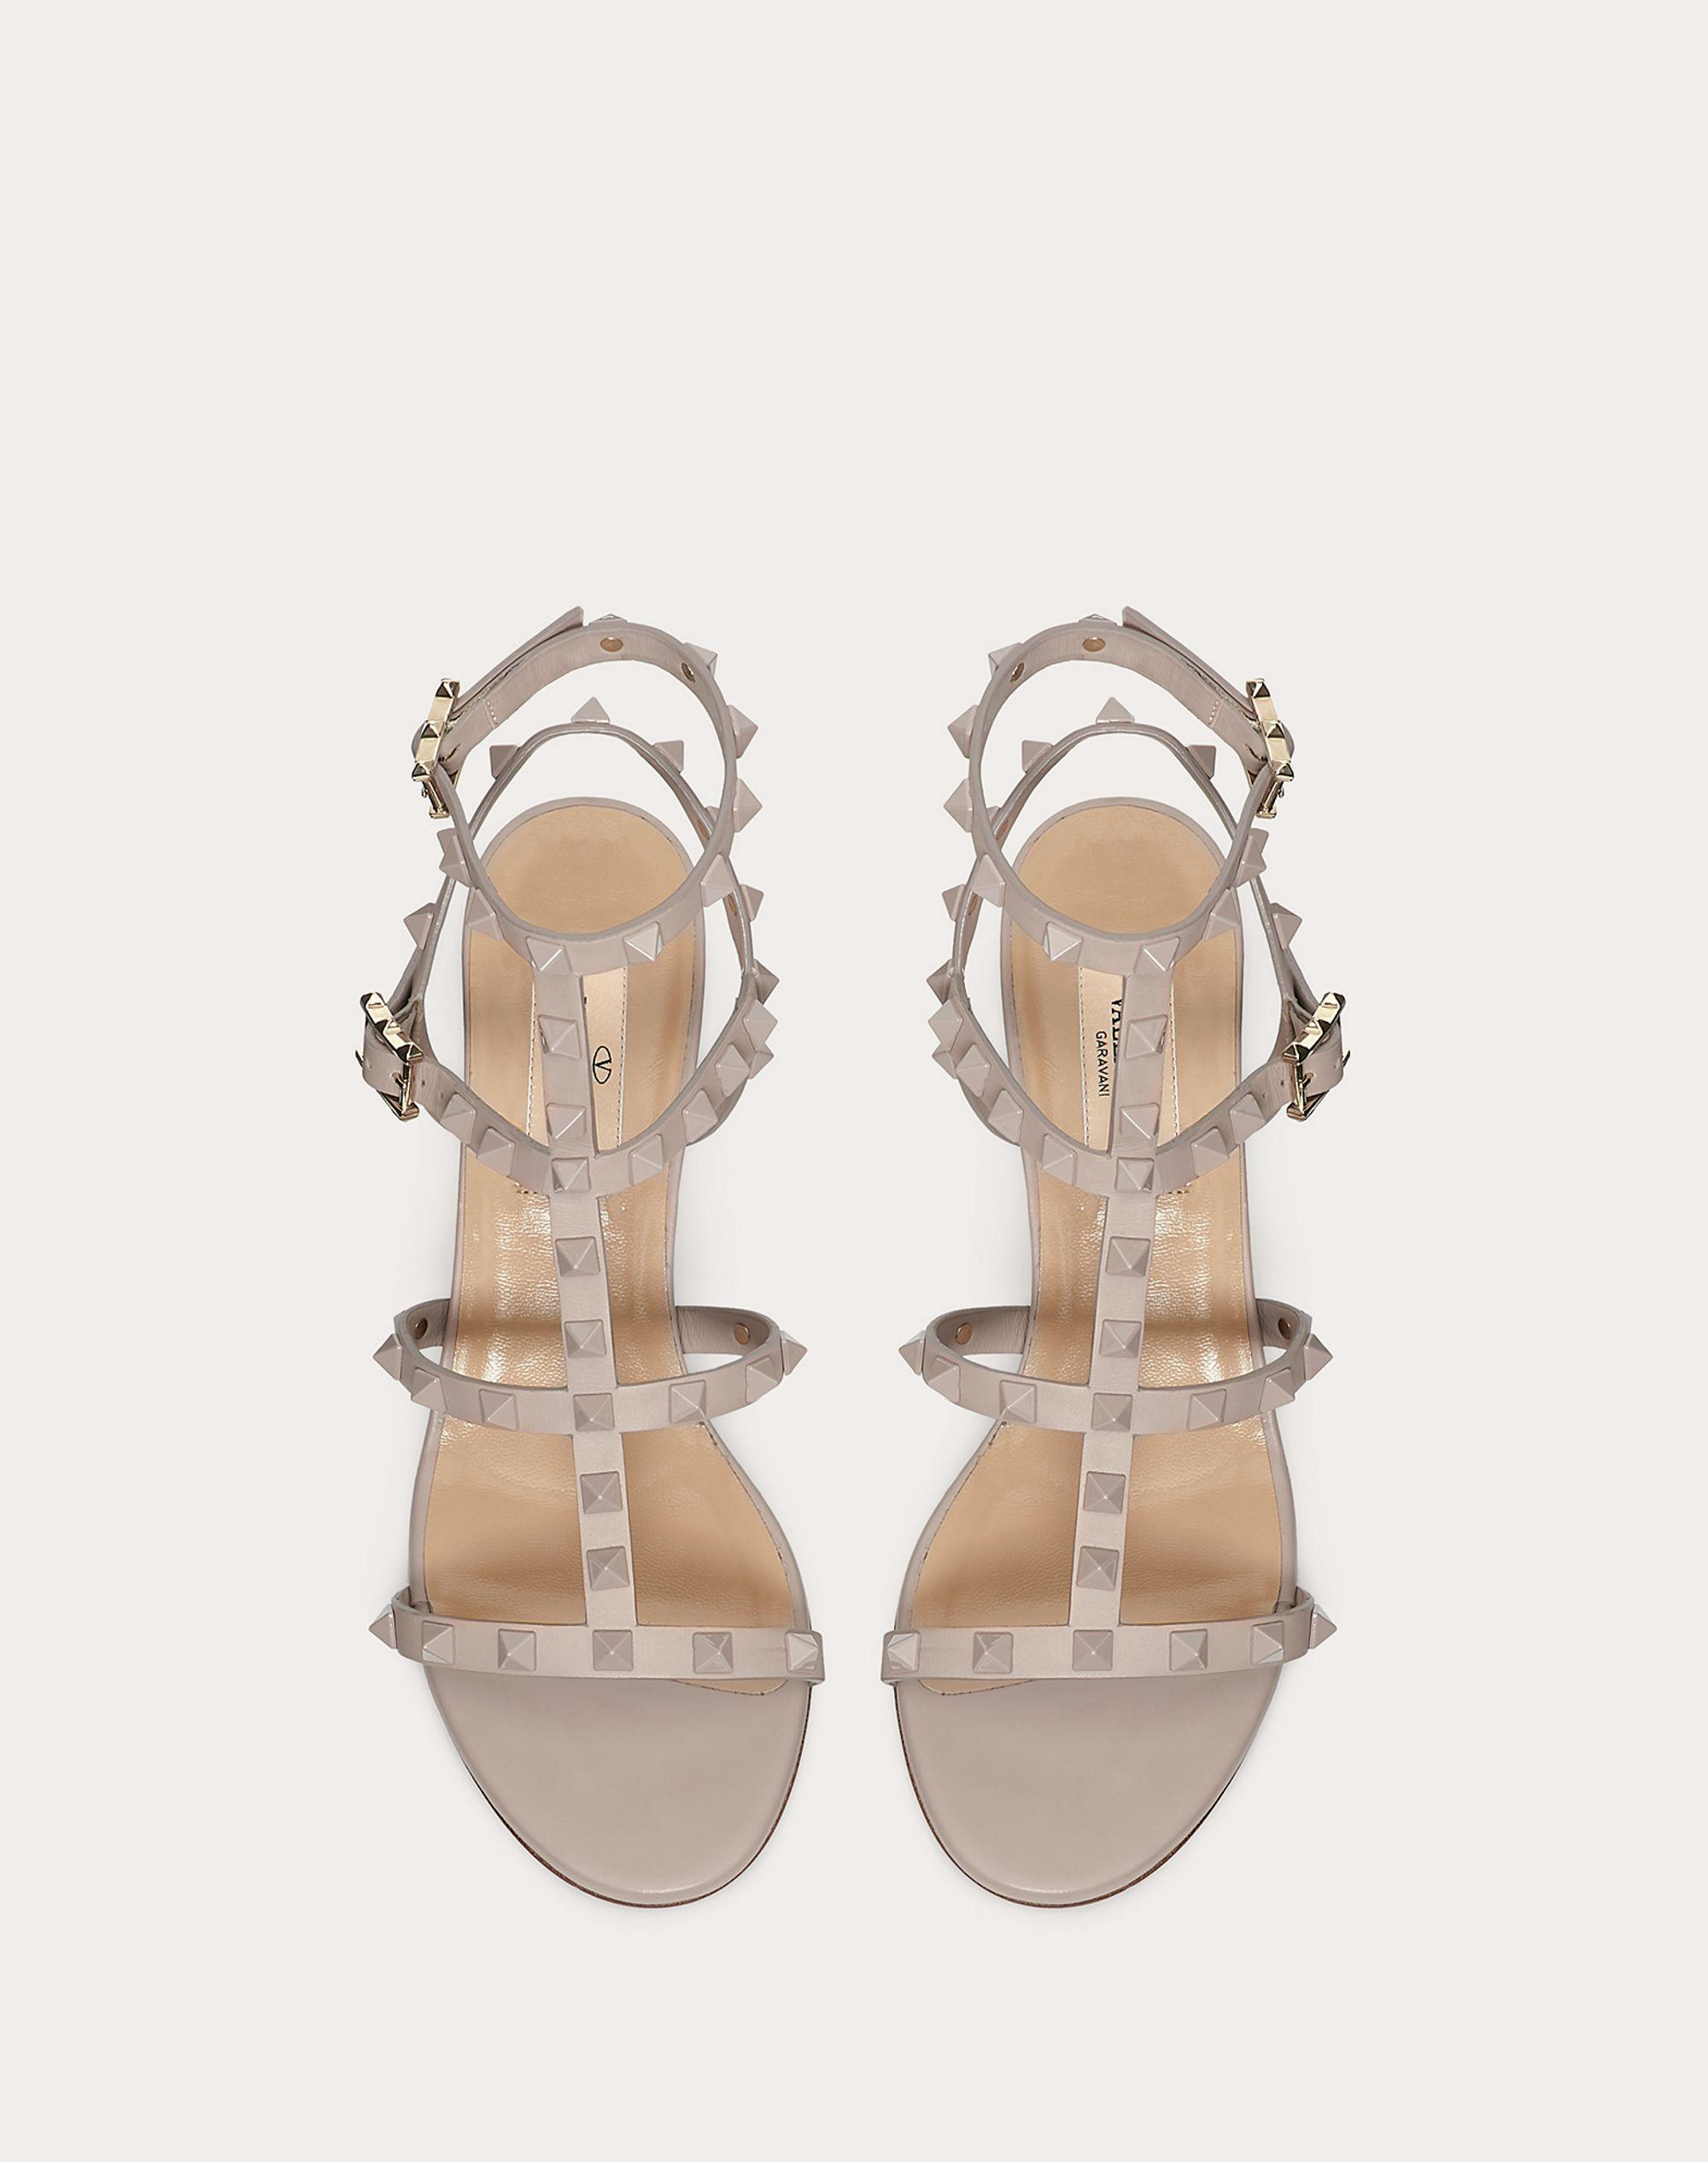 Rockstud Ankle Strap Calfskin Leather Sandal with Tonal Studs 60 mm 3